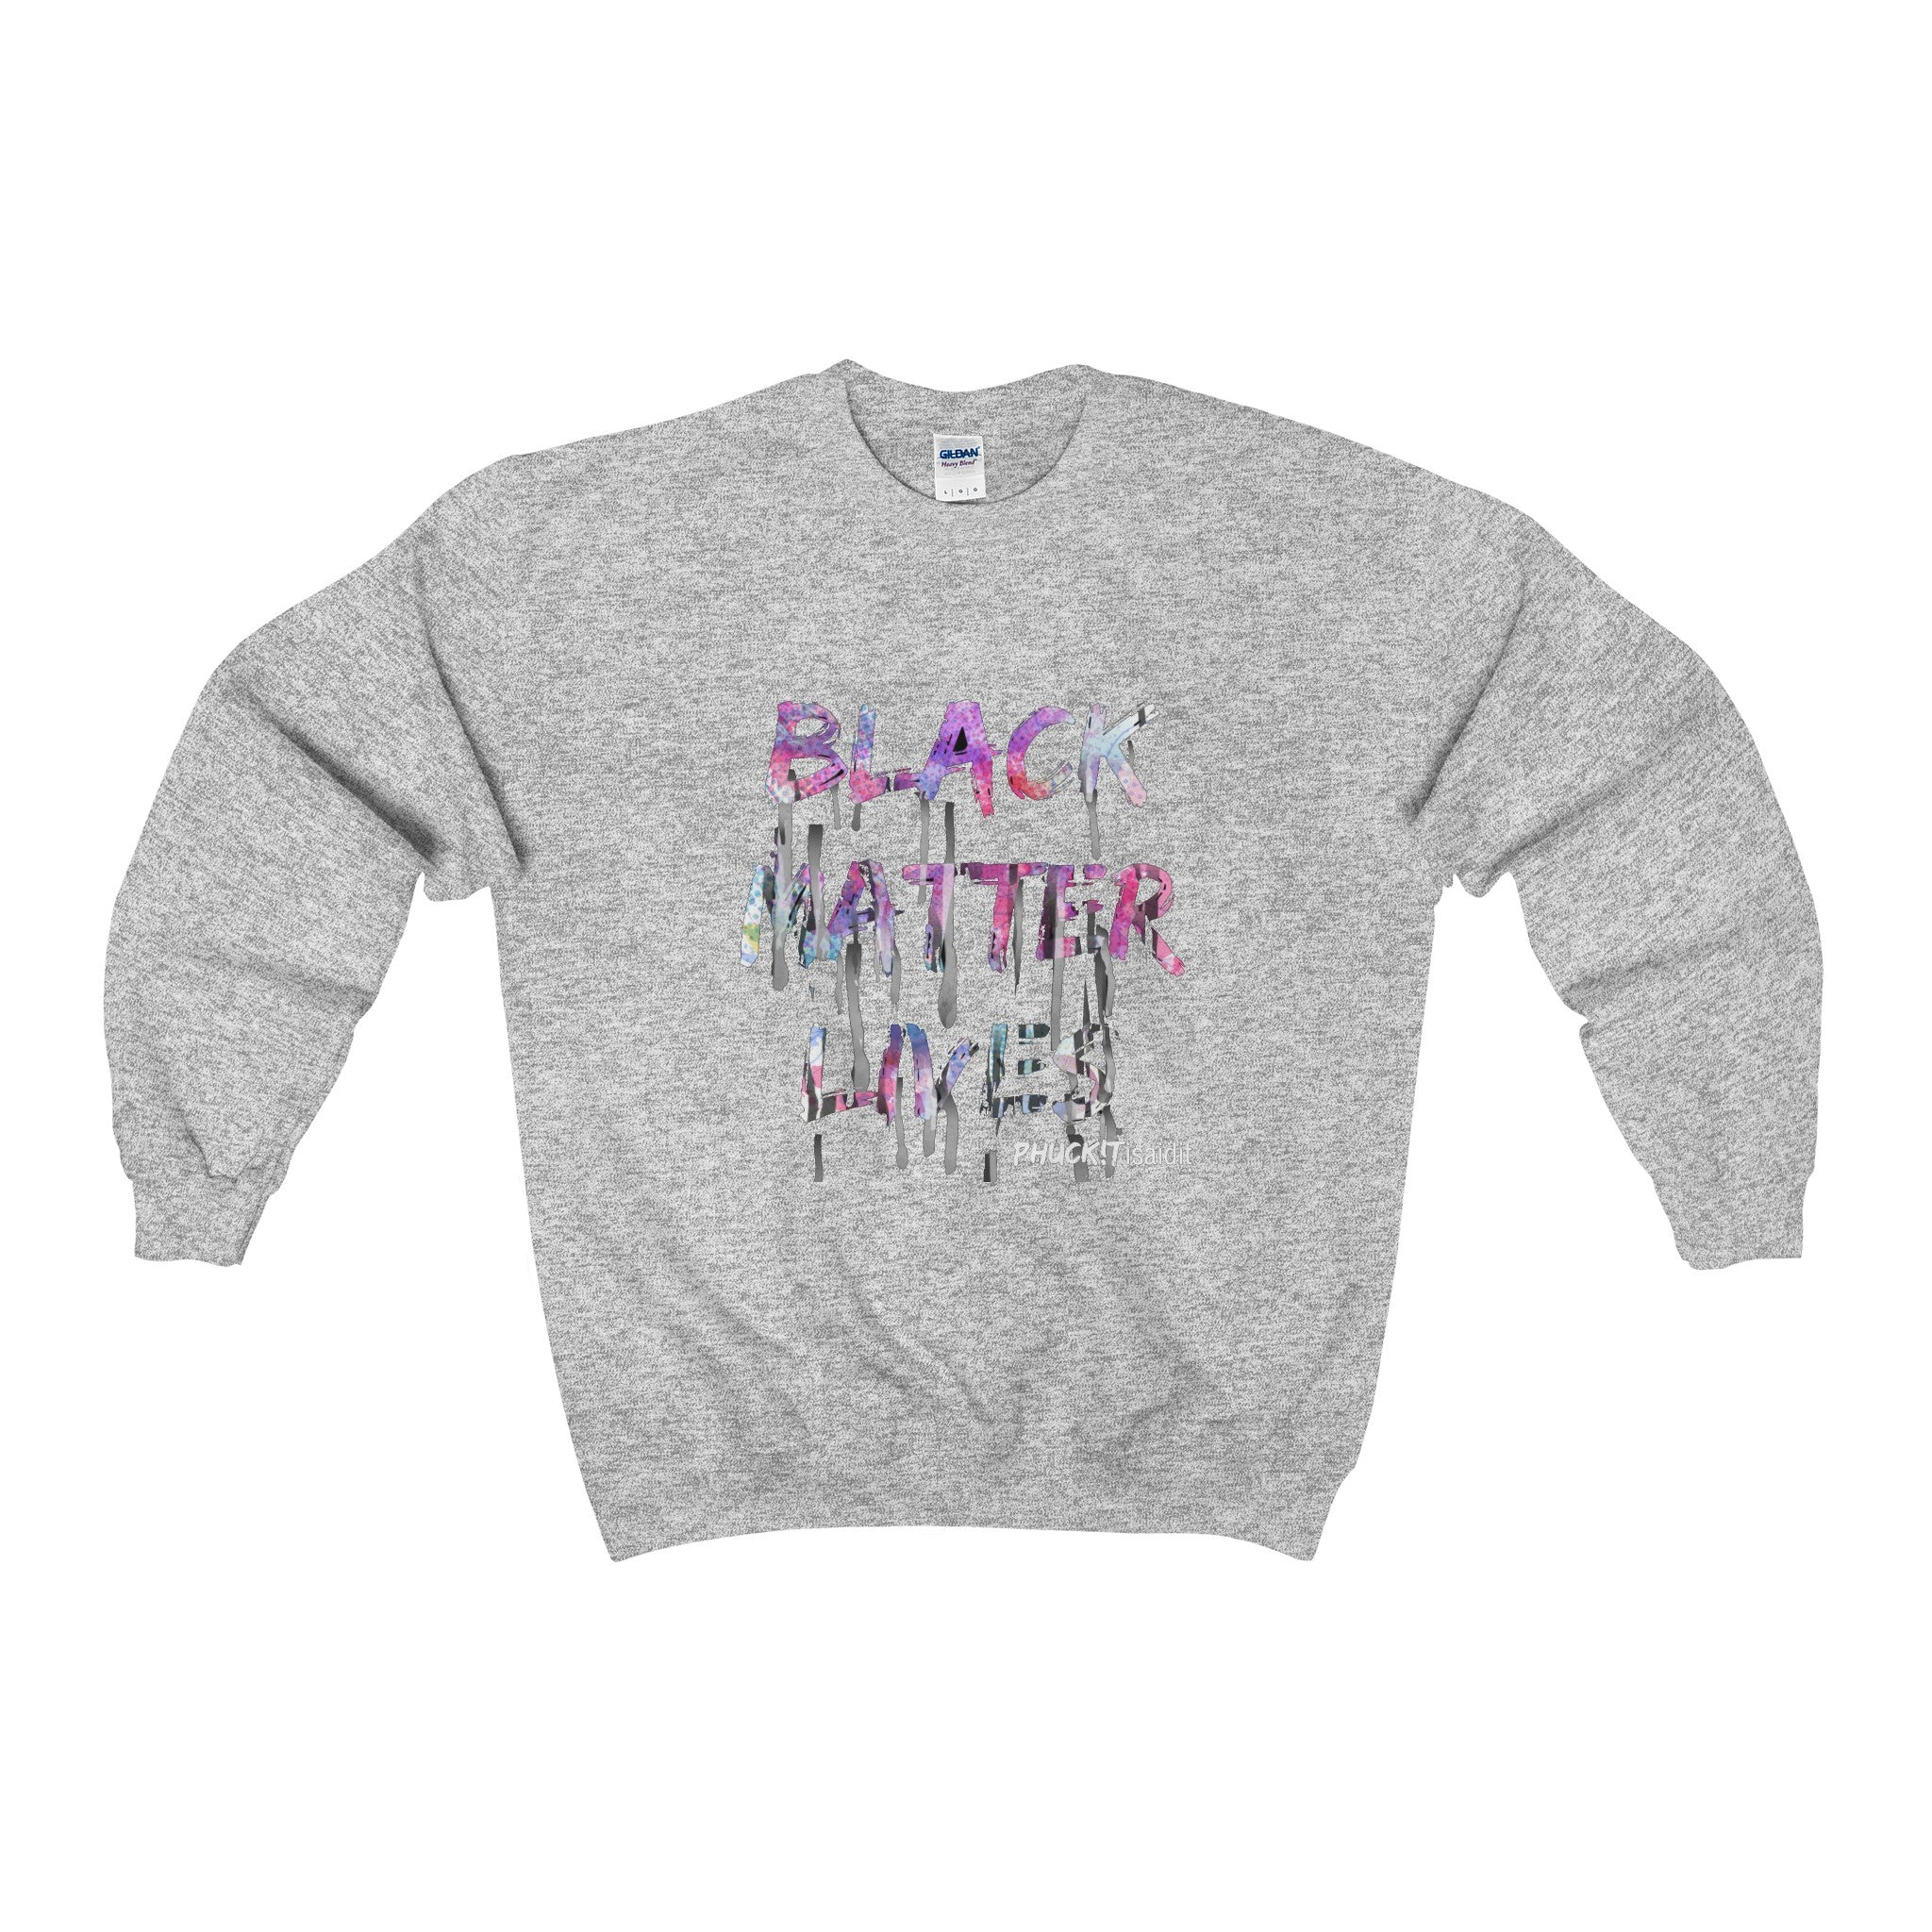 Black Matter LIVES men's Crewneck Sweatshirt